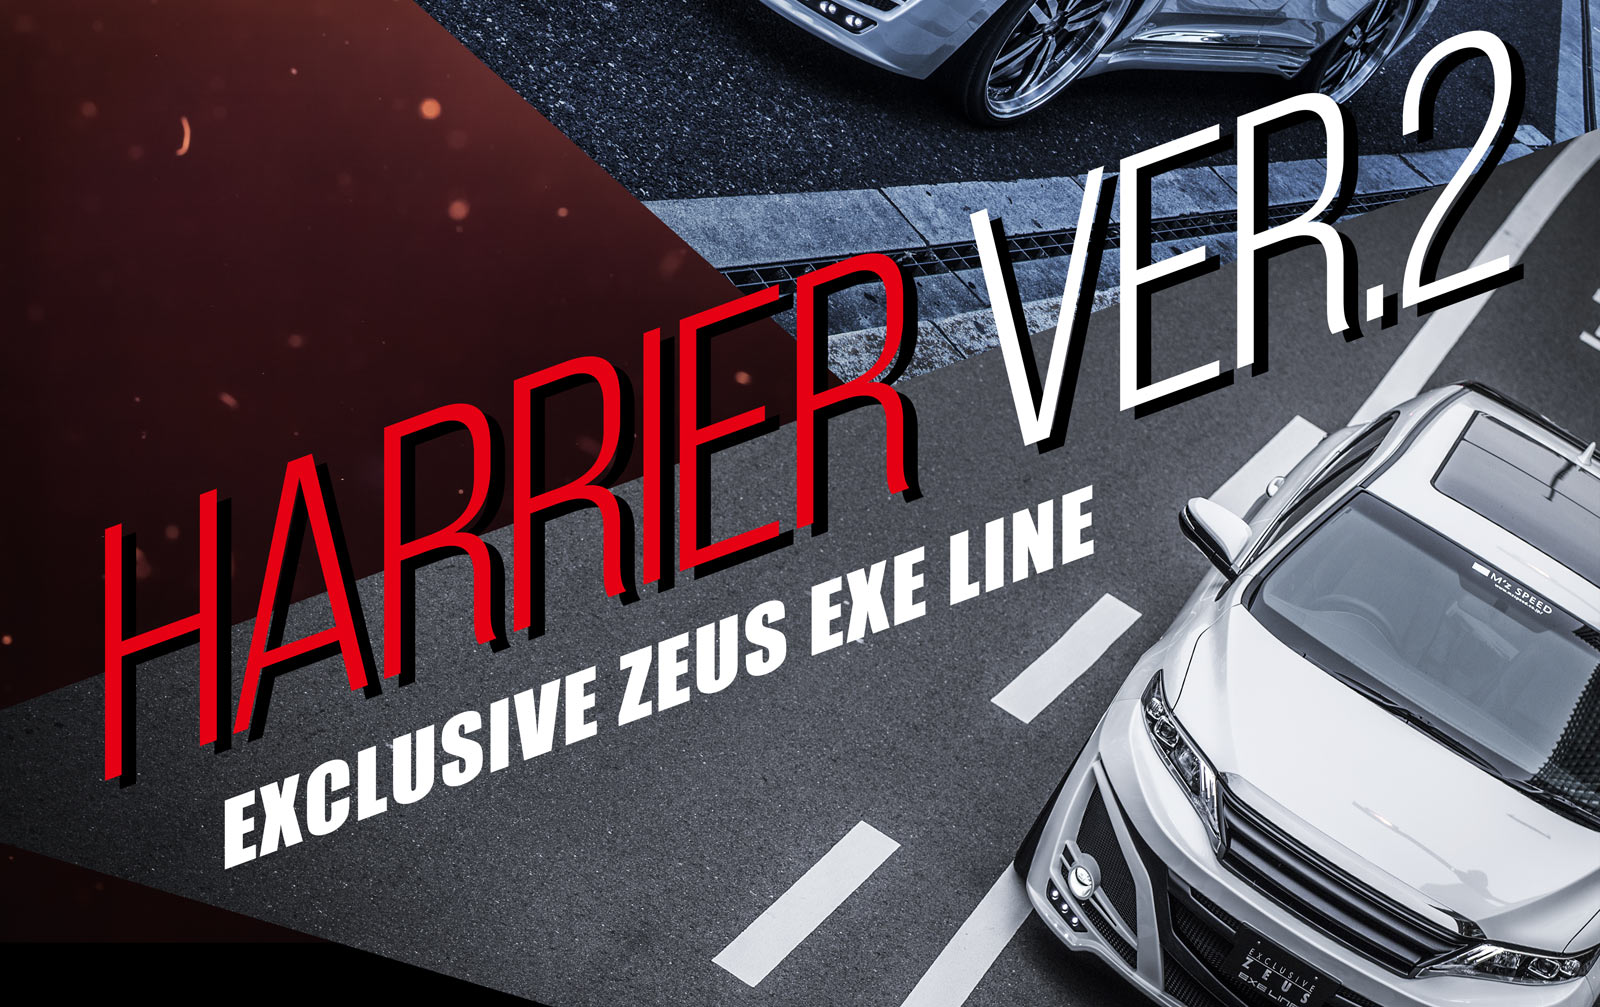 HARRIER Ver.2 EXCLUSIVE ZEUS EXE LINE